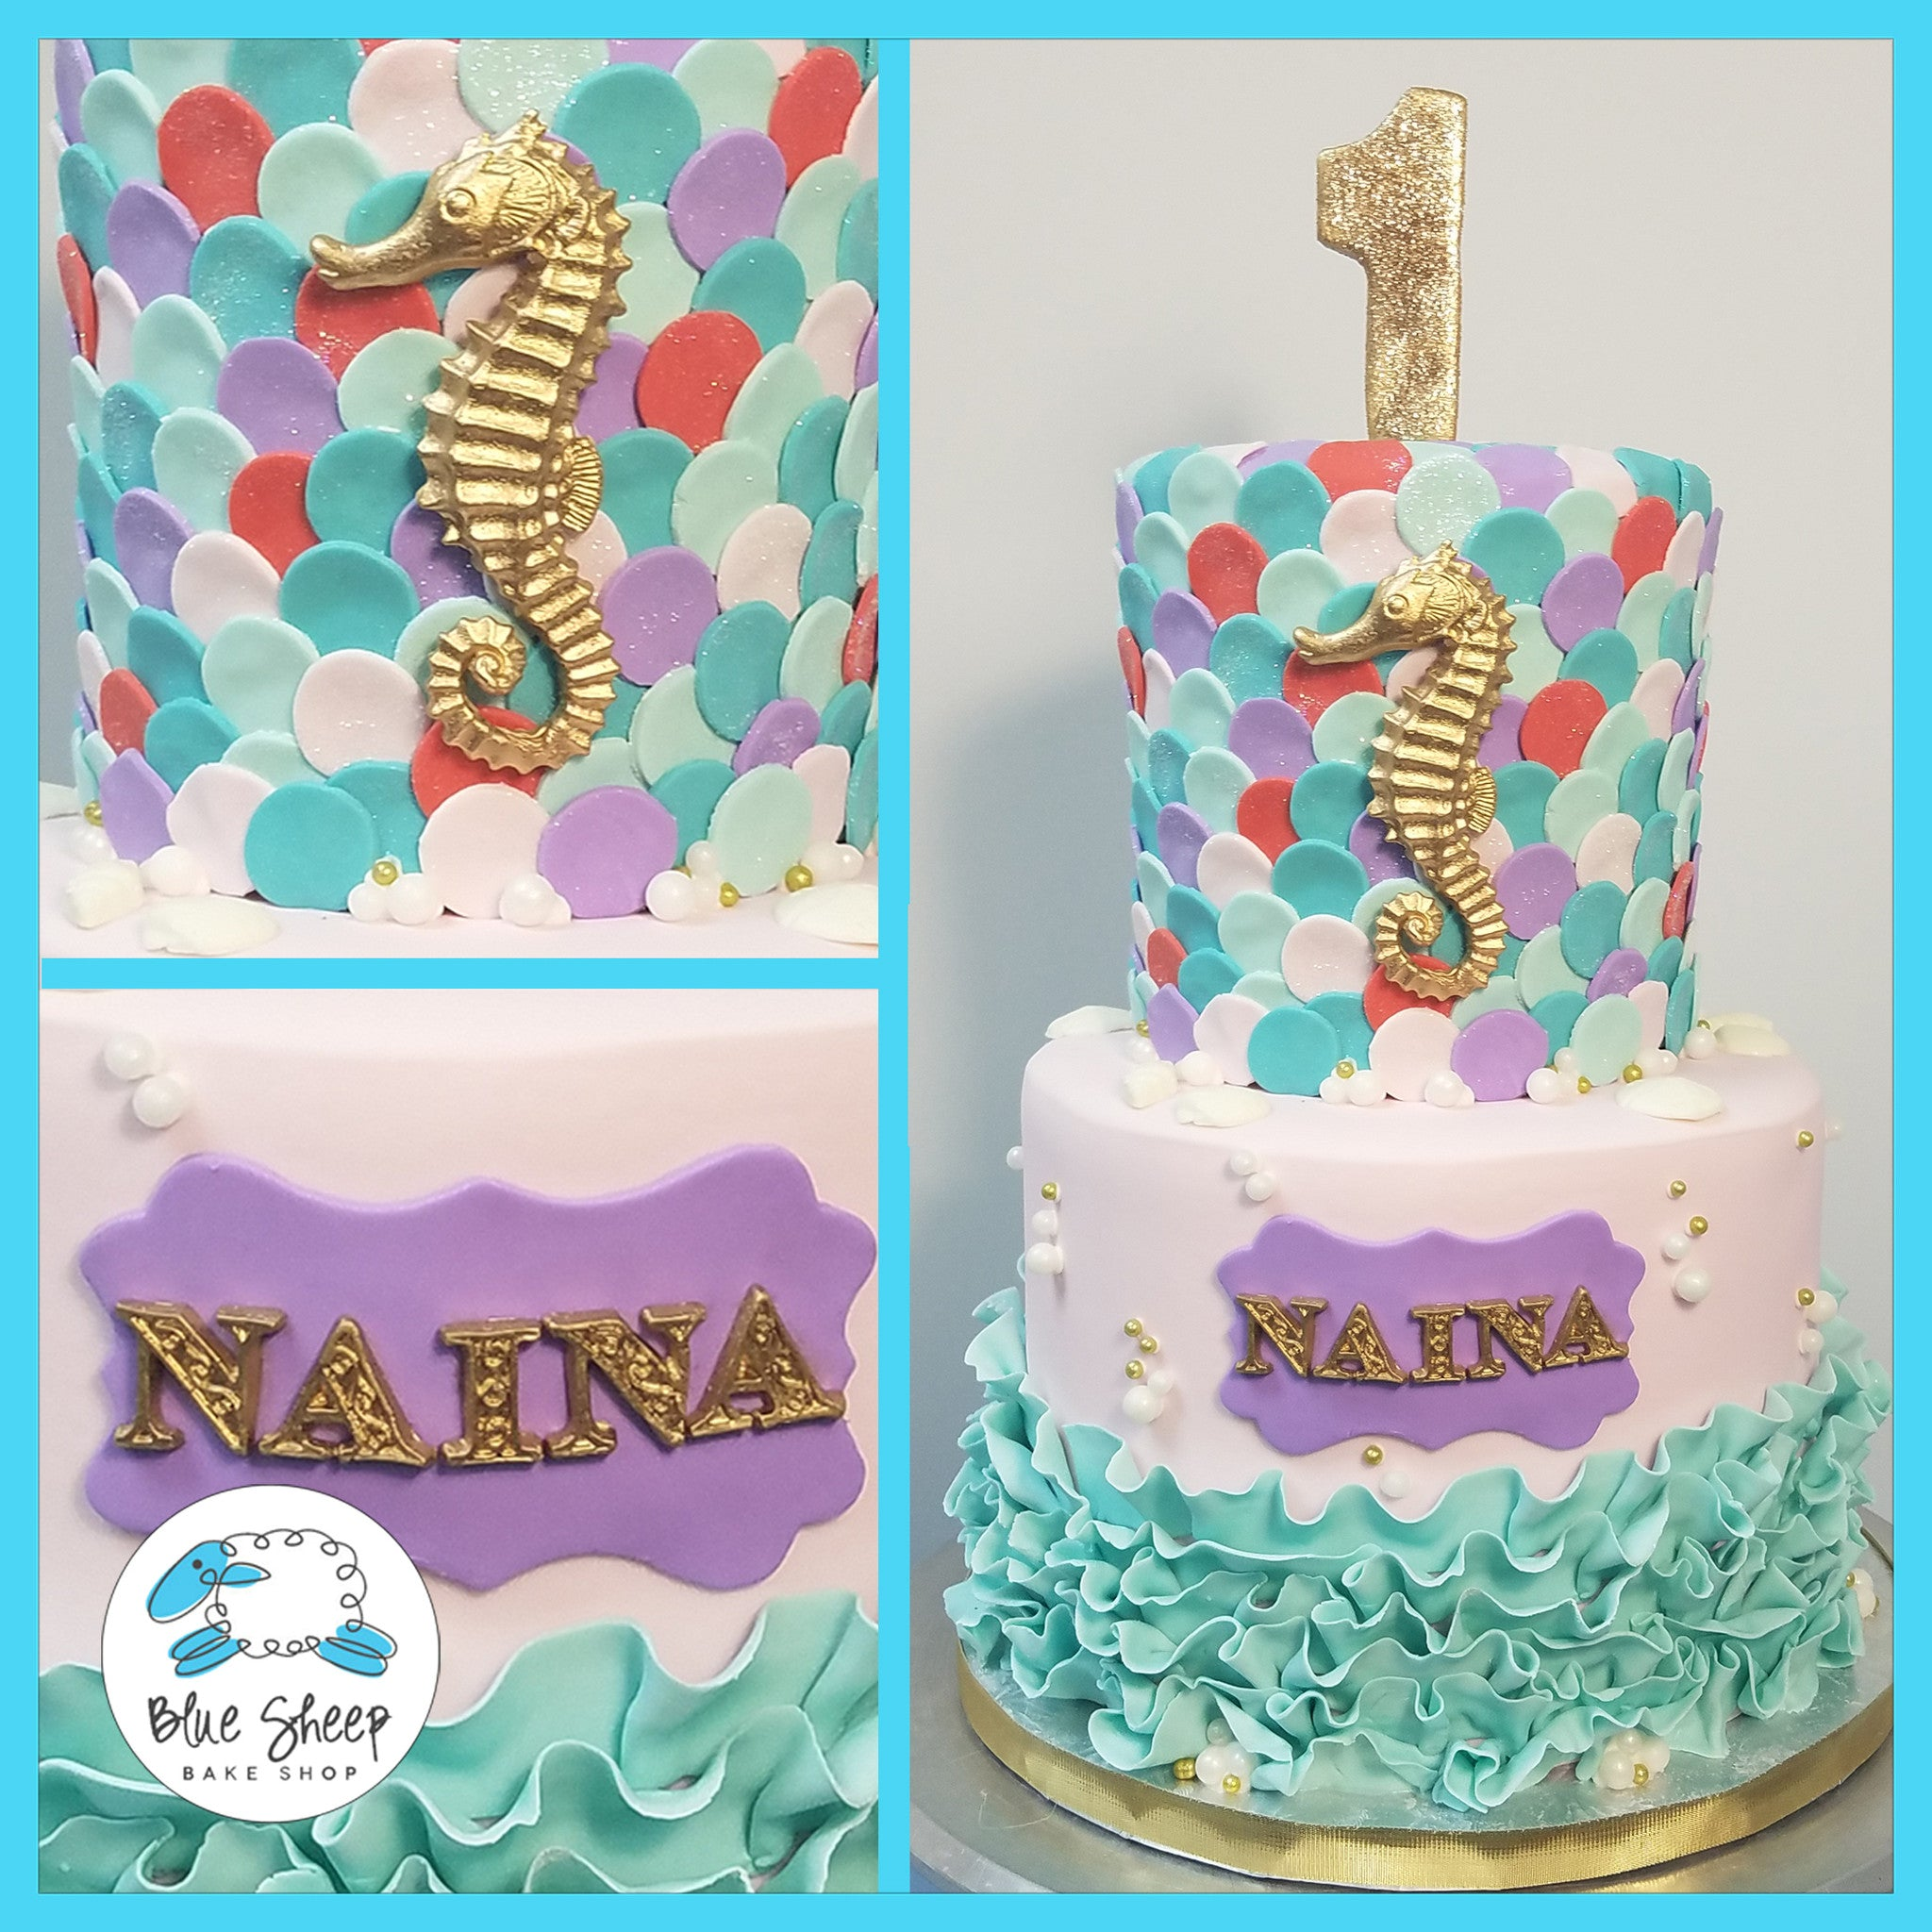 Nainas Mermaid Cake Blue Sheep Bake Shop